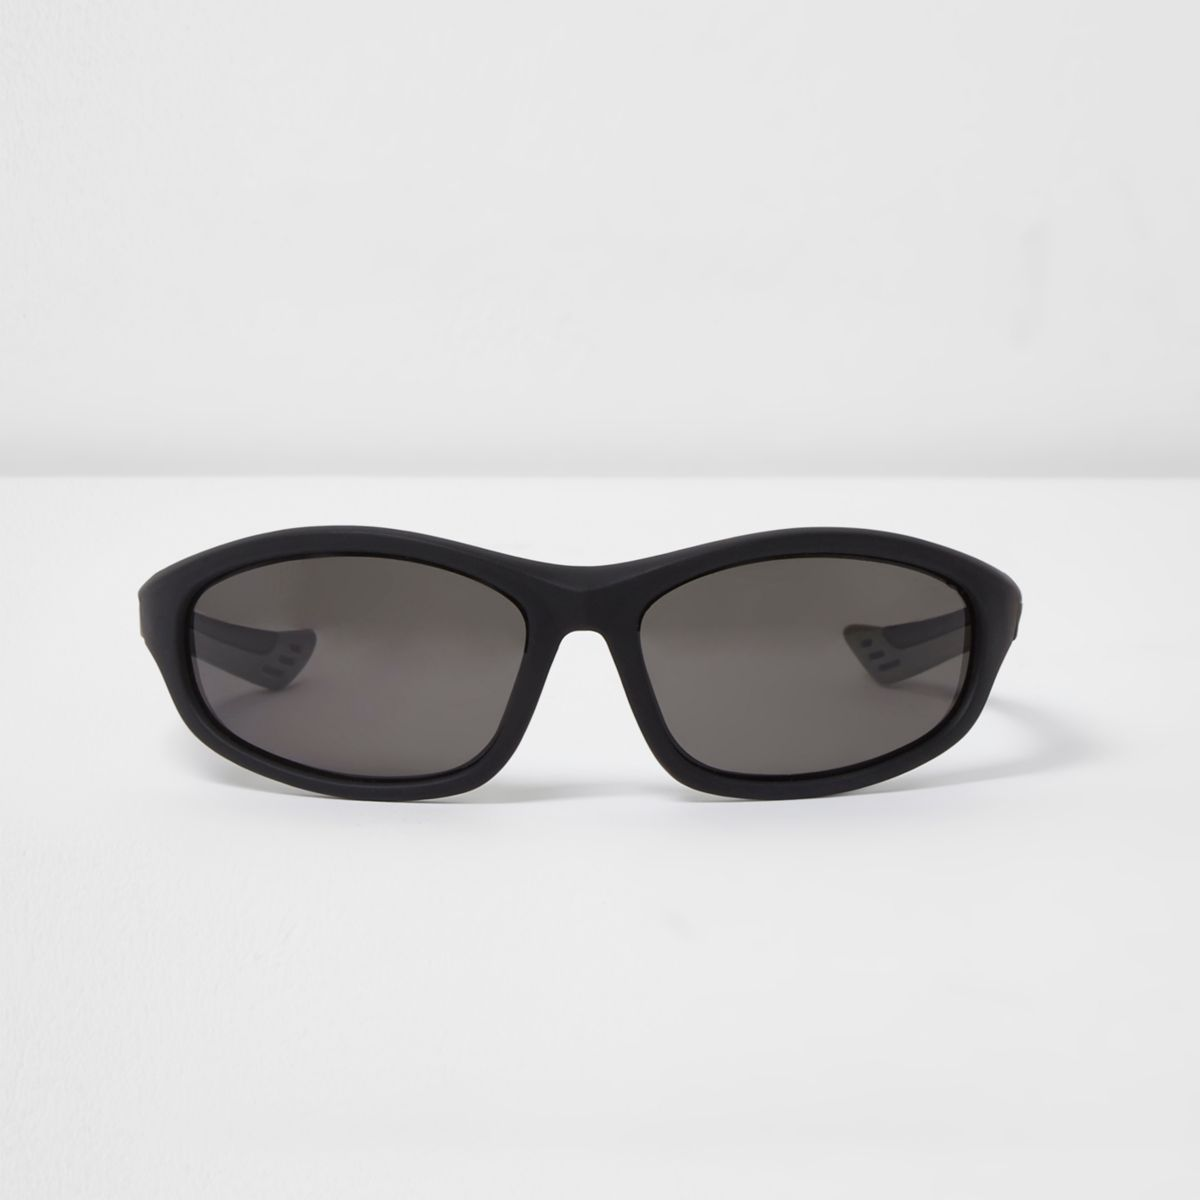 Black wraparound rubber arm sunglasses